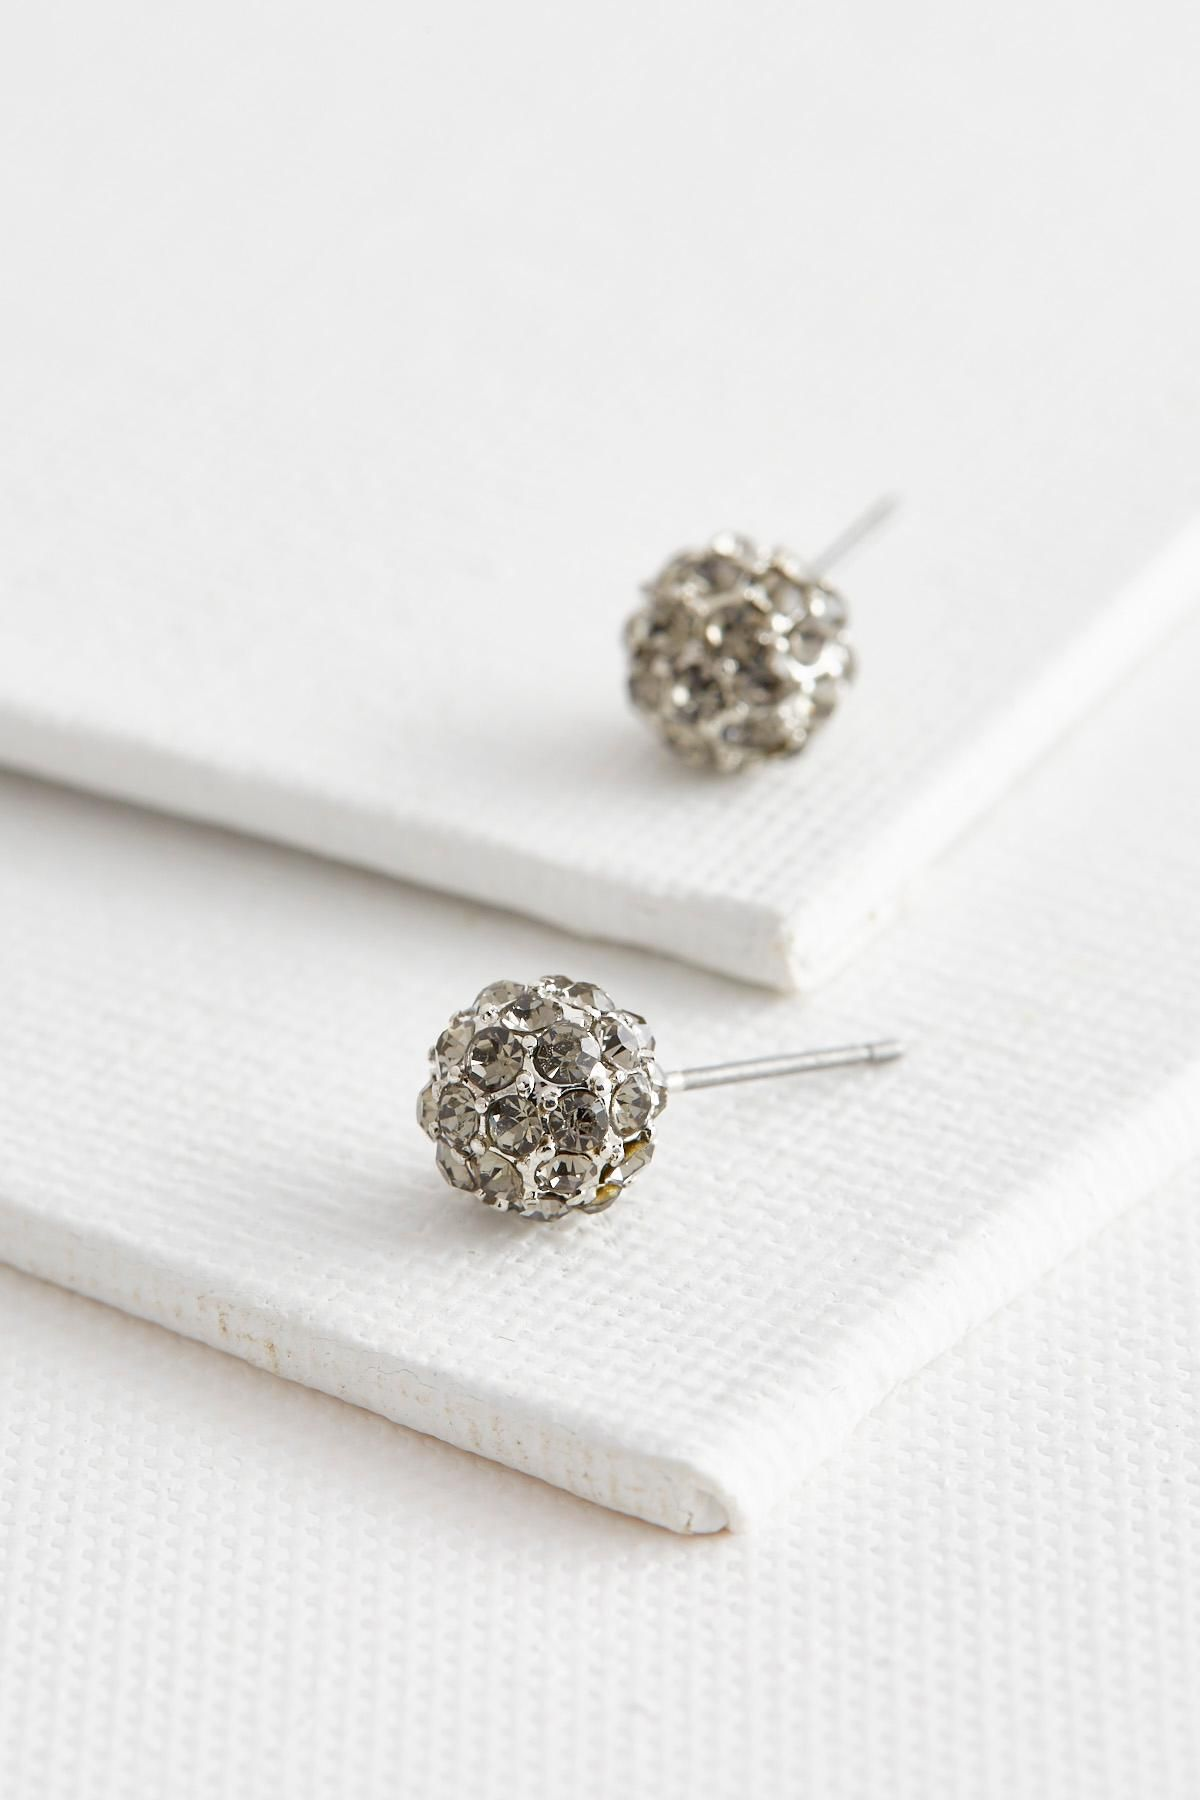 Dainty glistening rhinestones give an oh so chic feel to these pave